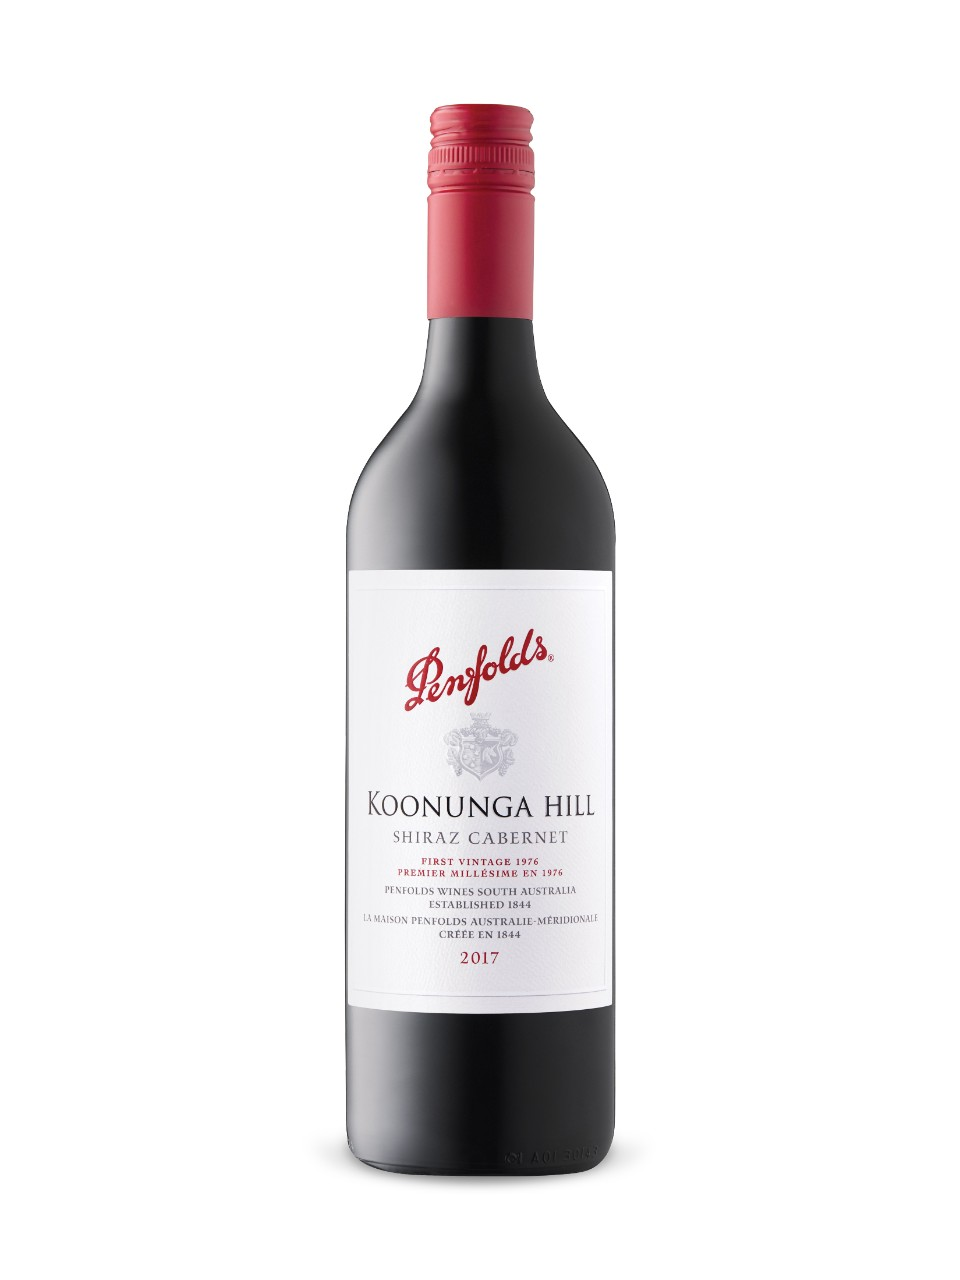 Penfolds Koonunga Hill Shiraz/Cabernet from LCBO